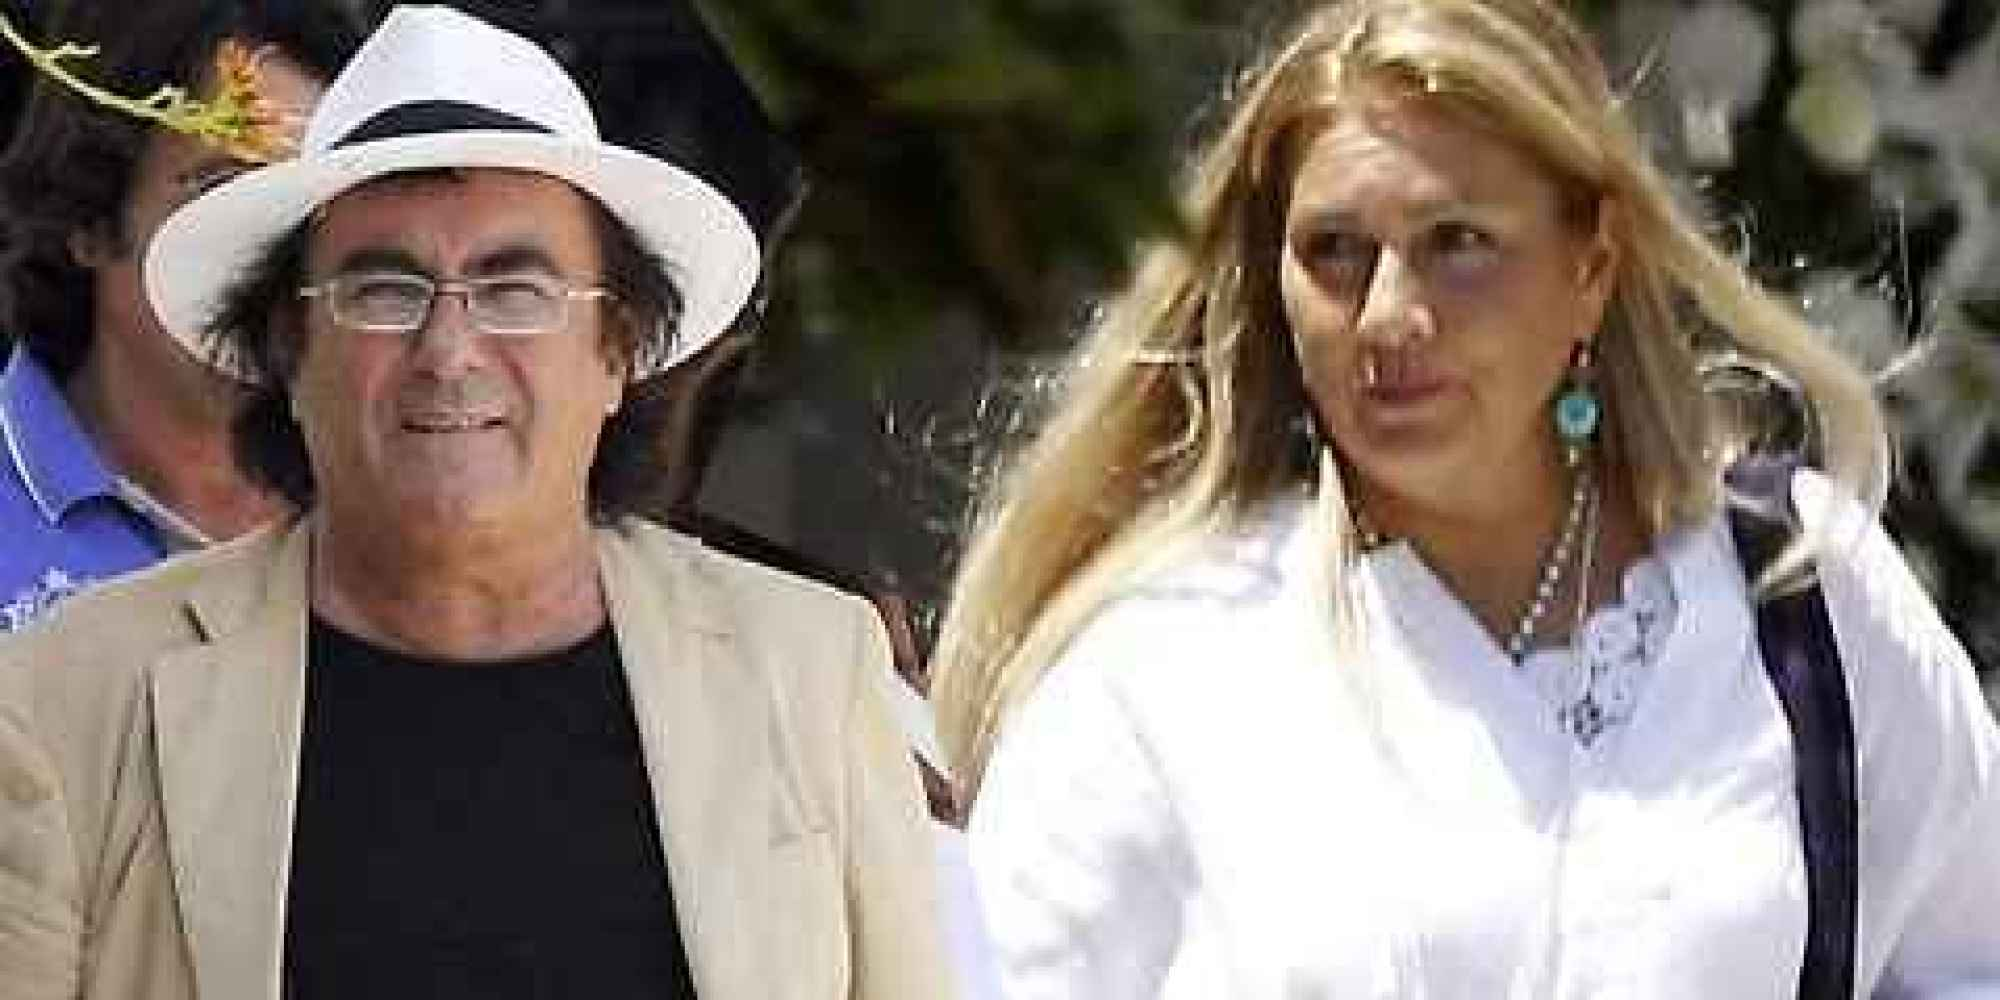 Al bano carrisi e romina power insieme di nuovo la coppia for Al bano e romina power